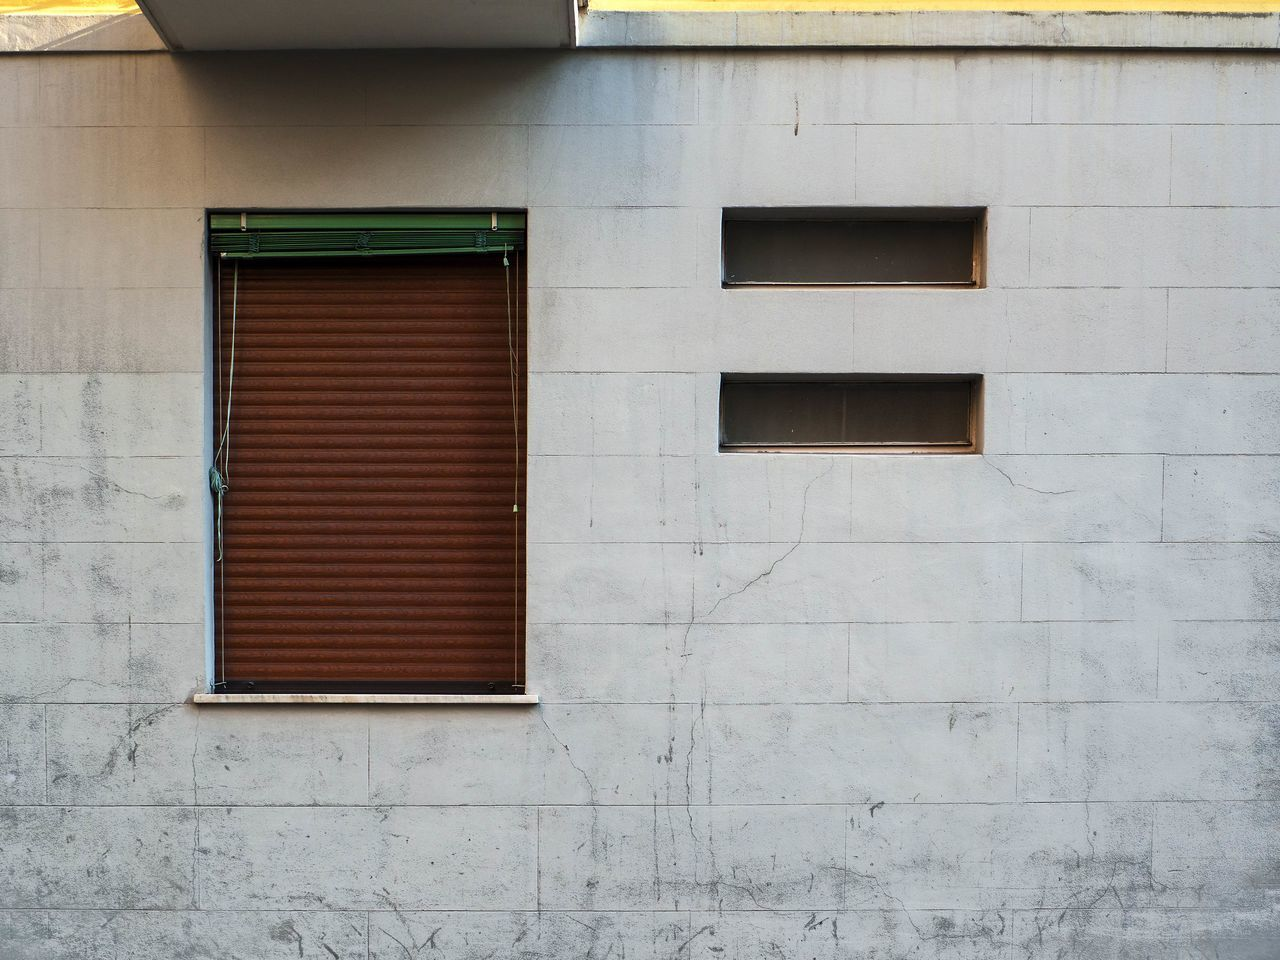 Architecture Brown Window Building Building Exterior Building Exteriors Built Structure Day Facade Building Facade Detail Home Exterior No People Outdoors Shade Stone Tiles Wall Window Window Frame Window Shade Windows Wome Window